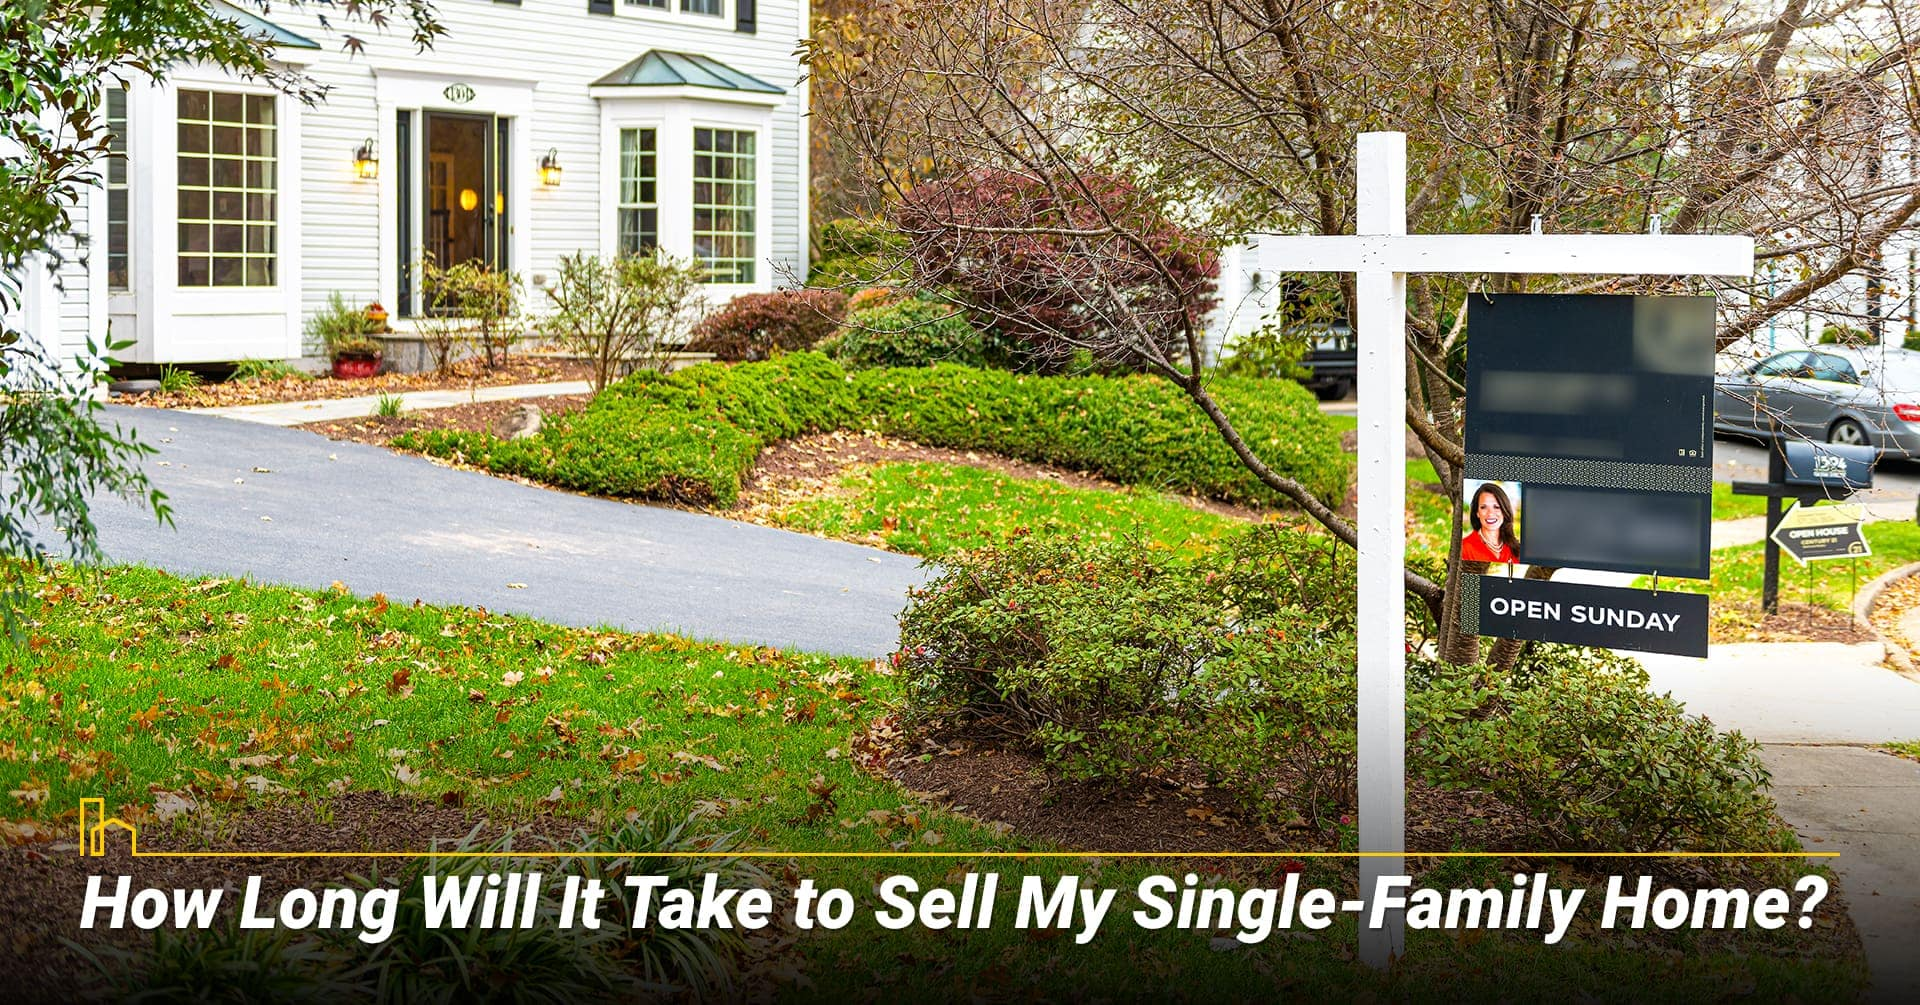 How Long Will It Take to Sell My Single-Family Home? Time it takes to sell your home